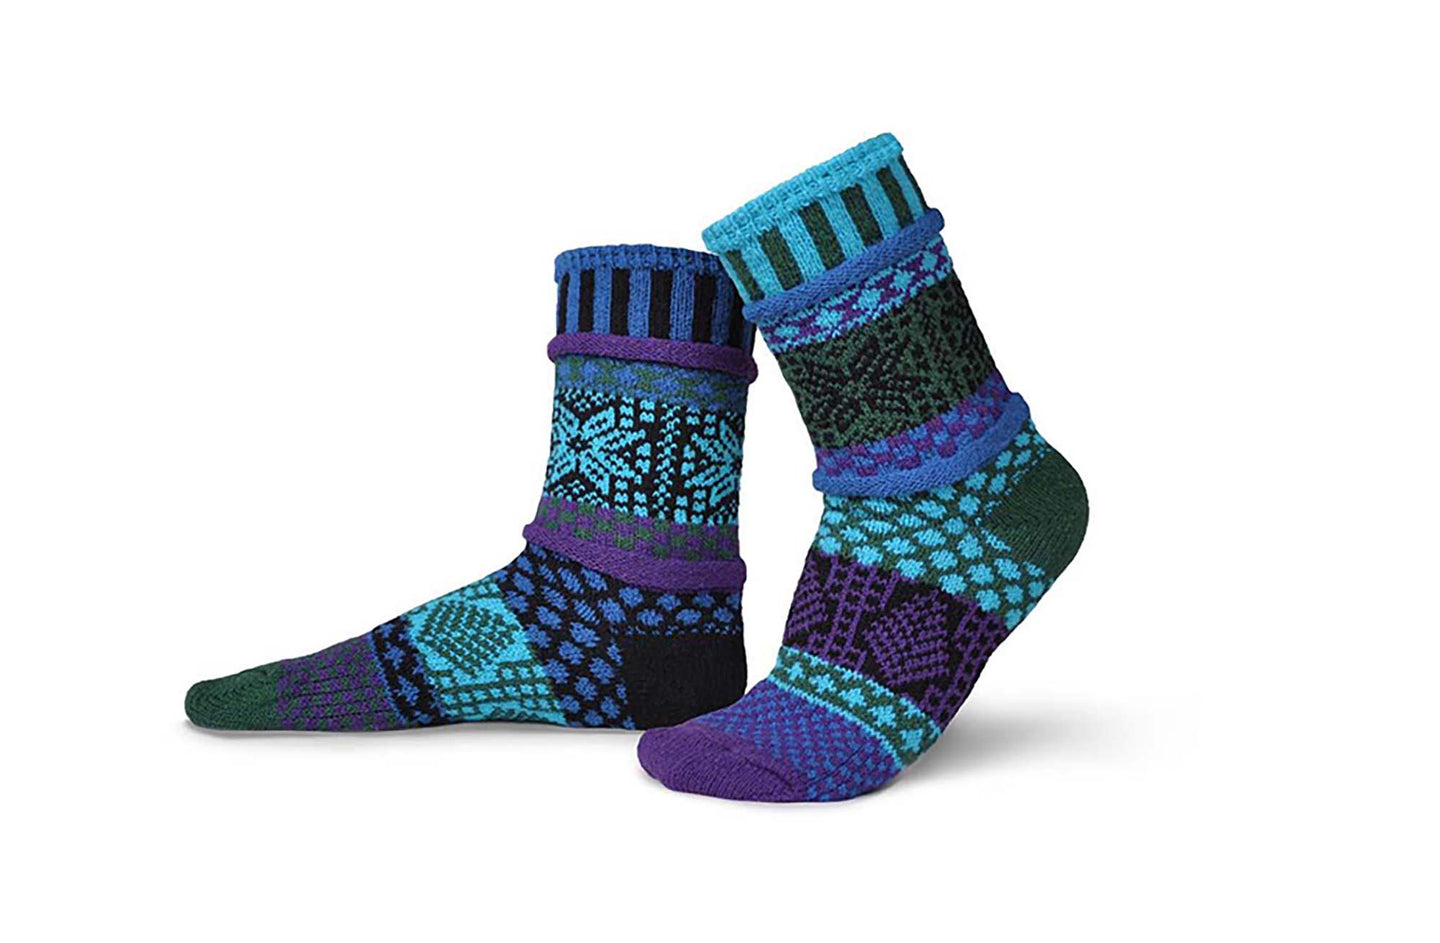 Solmate socks in Blue Spruce with aqua, purple, blue and forest green.